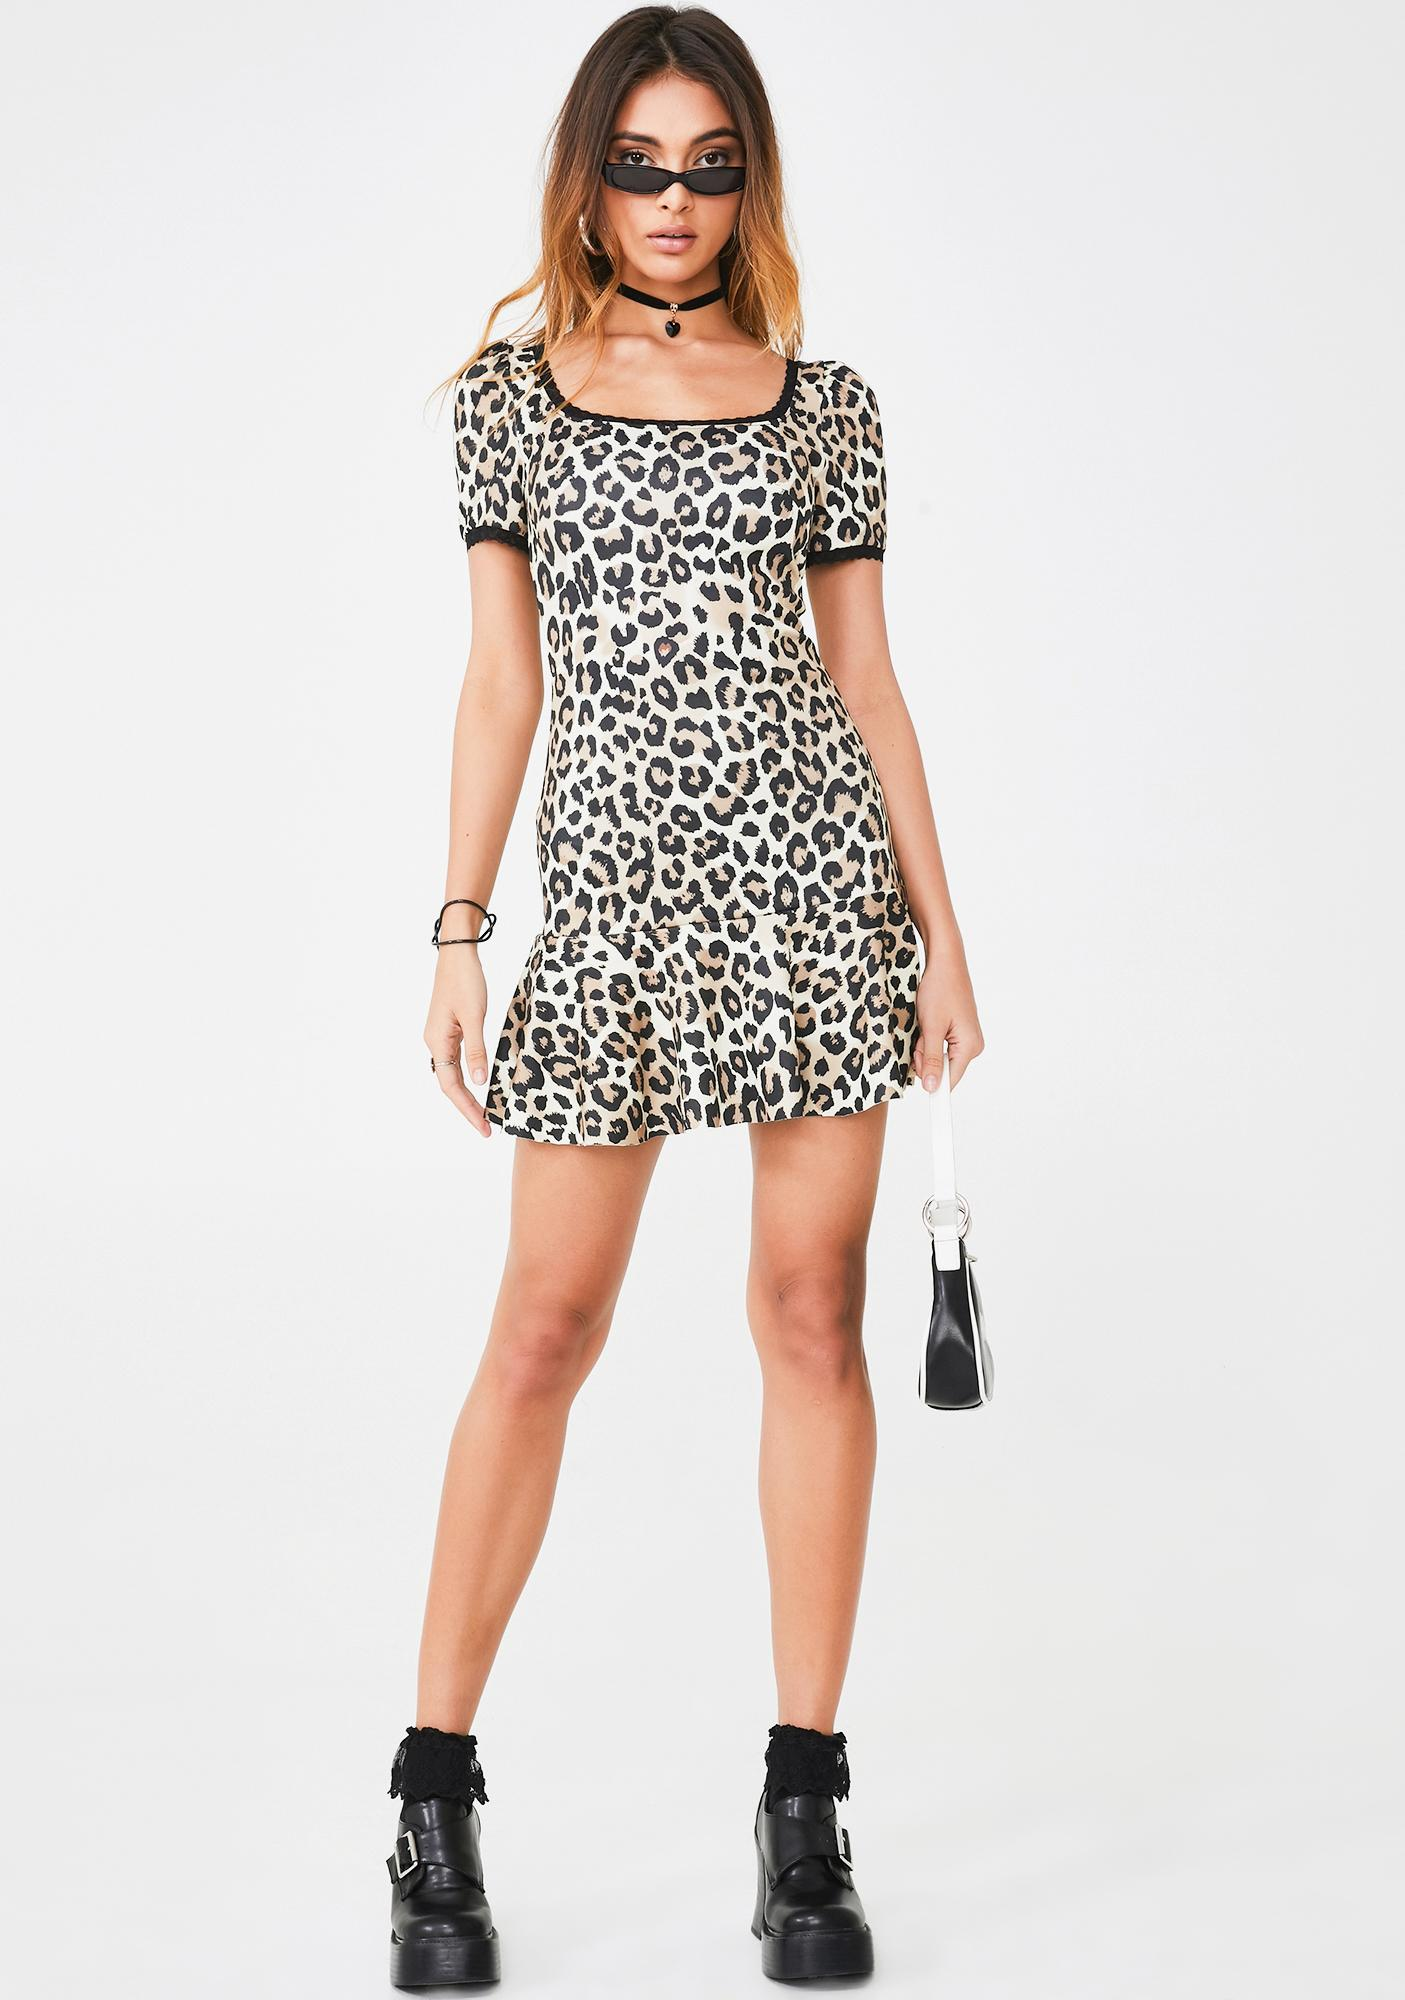 Current Mood Hot Blooded Leopard Dress